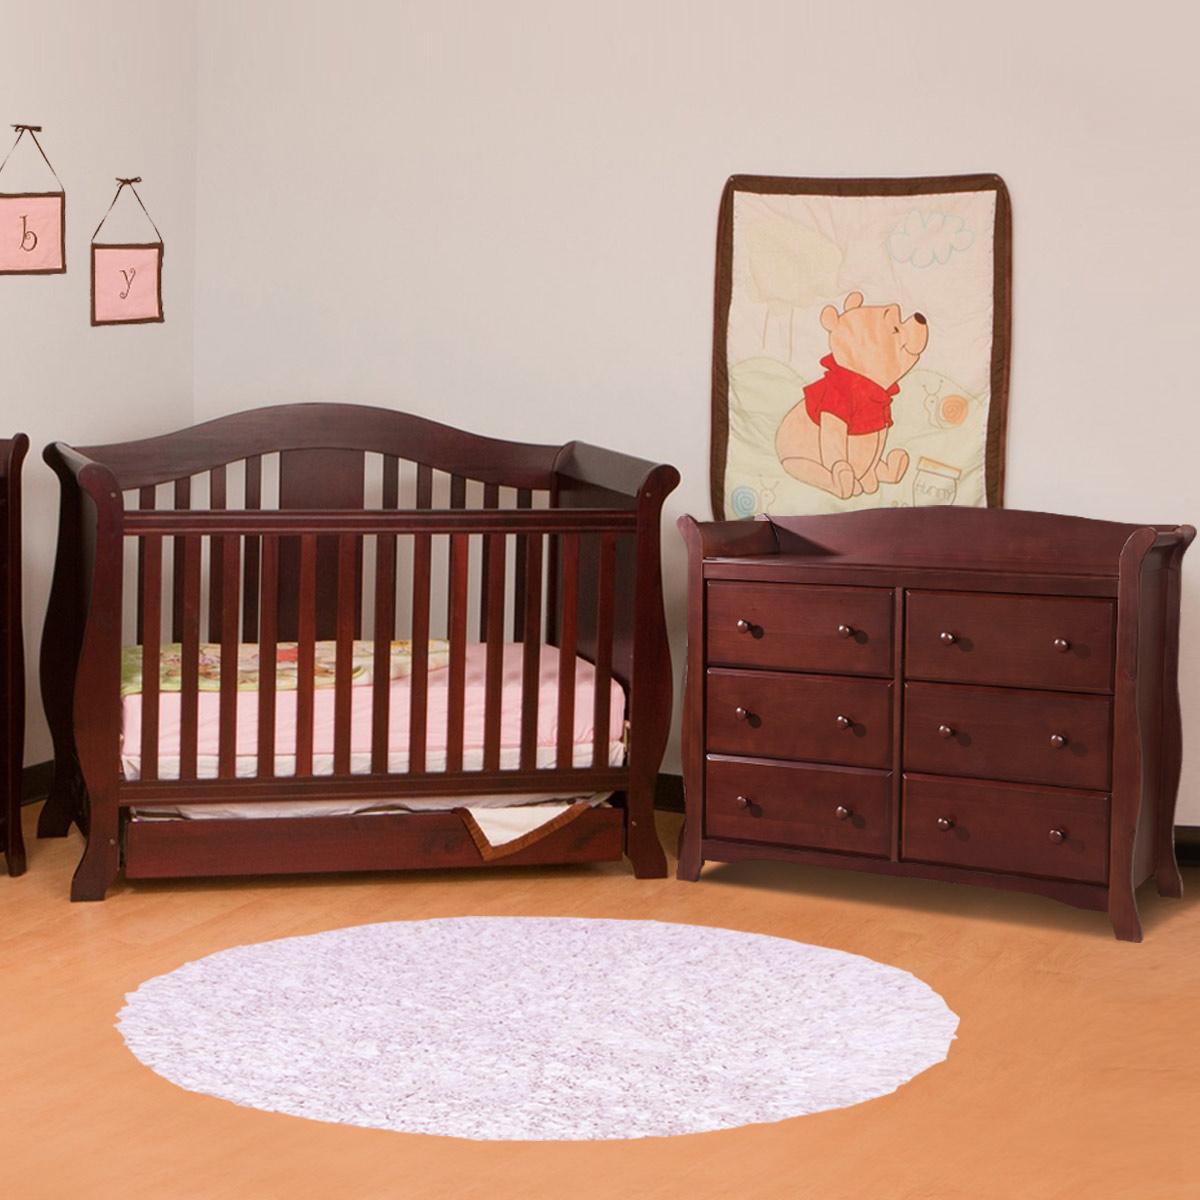 crib and changing table sets crib dresser changing table set s cheap and sets nursery baby sc. Black Bedroom Furniture Sets. Home Design Ideas